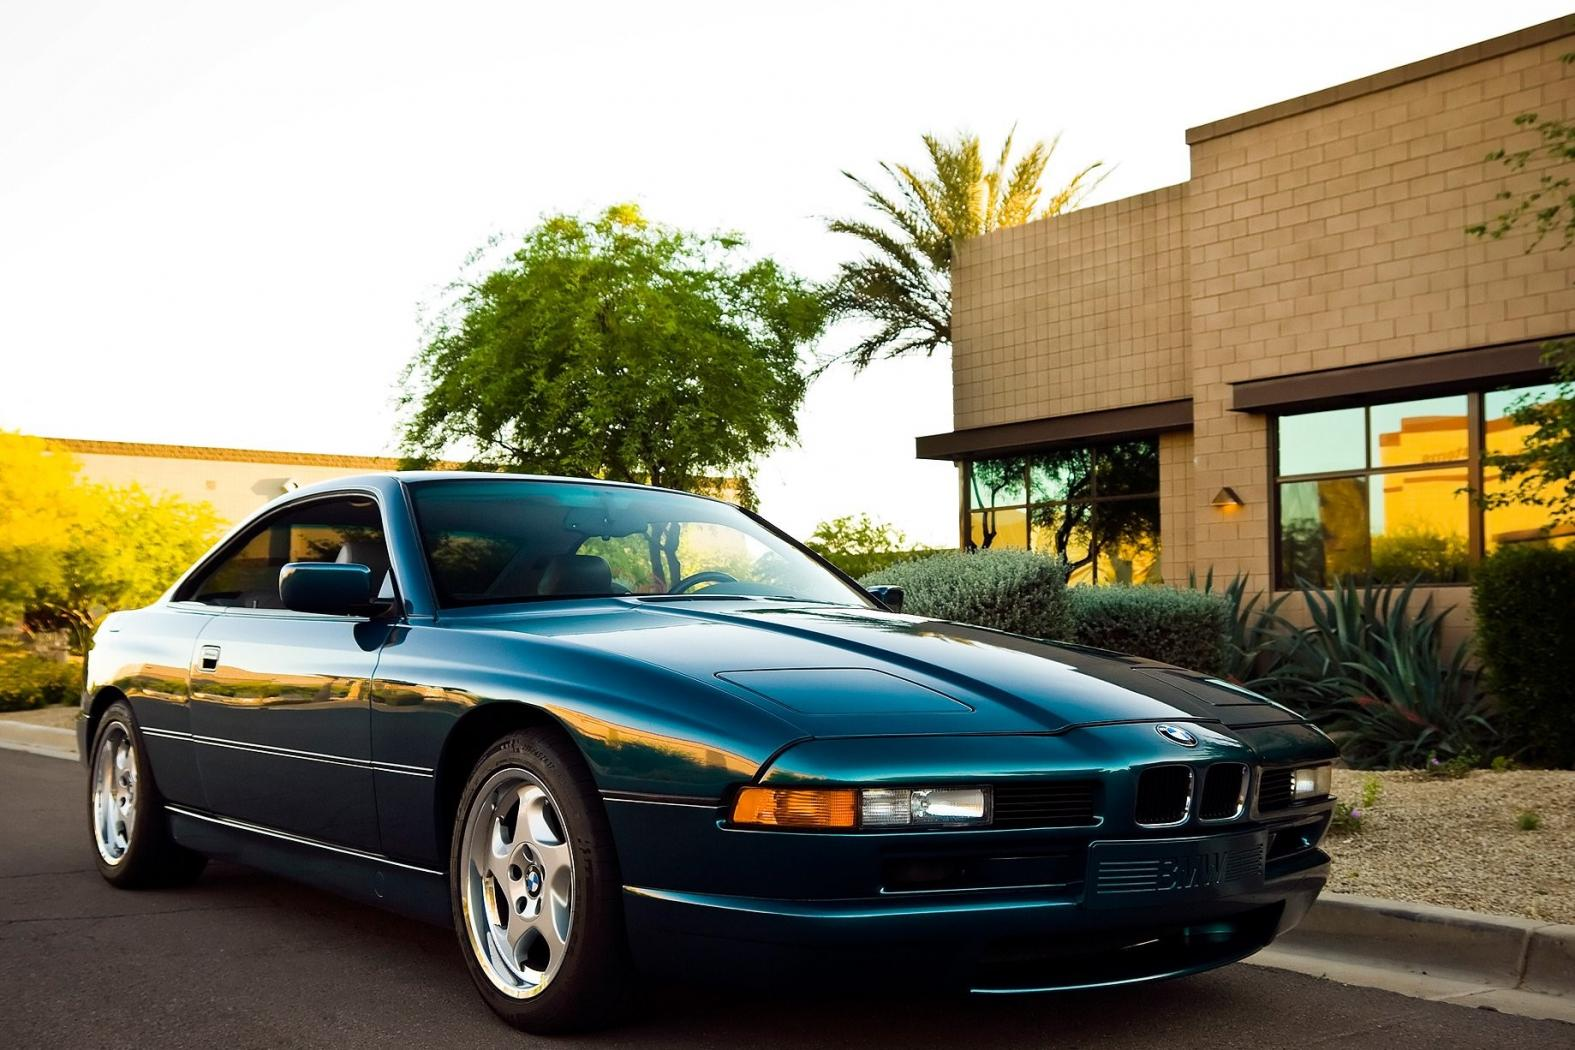 BMW--850CSi-1994.jpeg